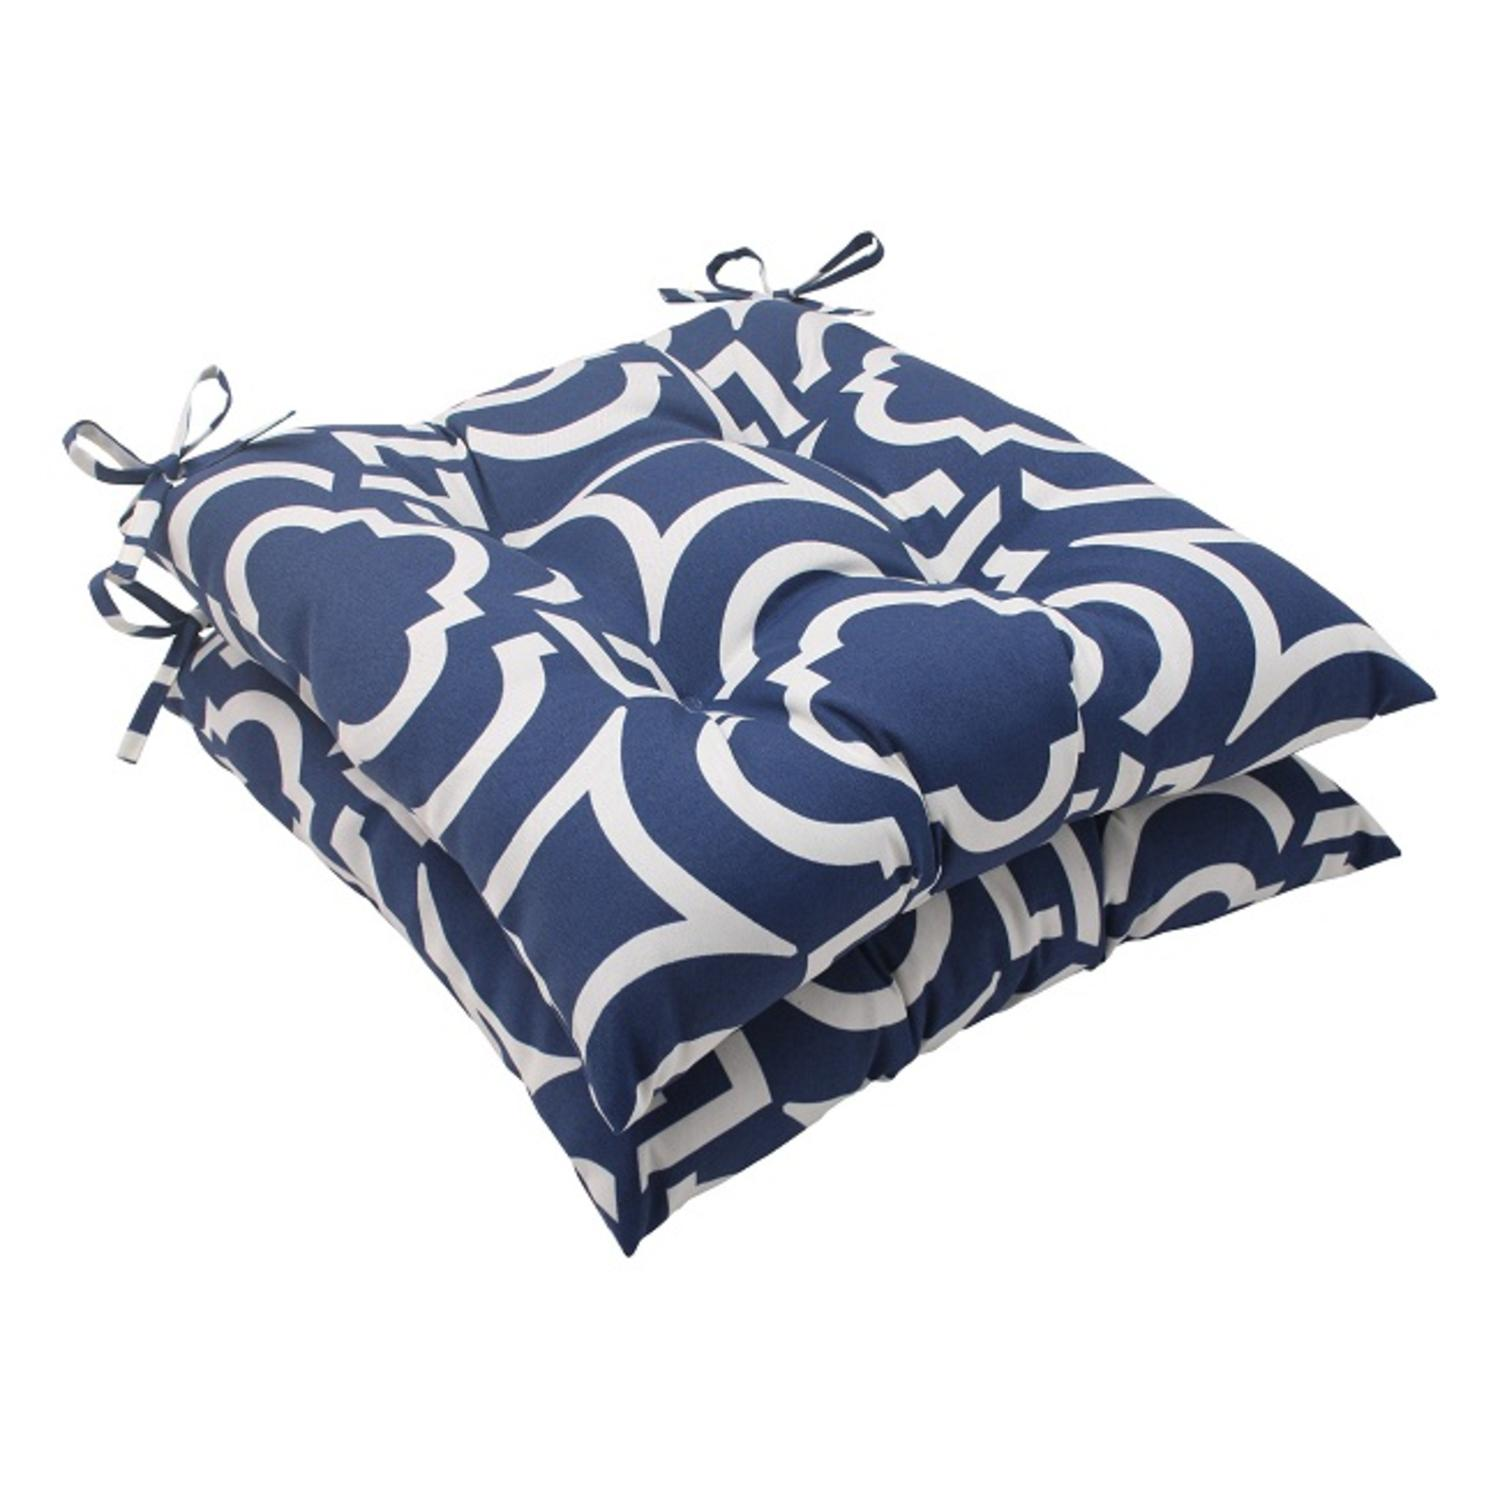 Set of 2 Geometric Navy Blue Sky Outdoor Patio Tufted Seat Cushions 19""